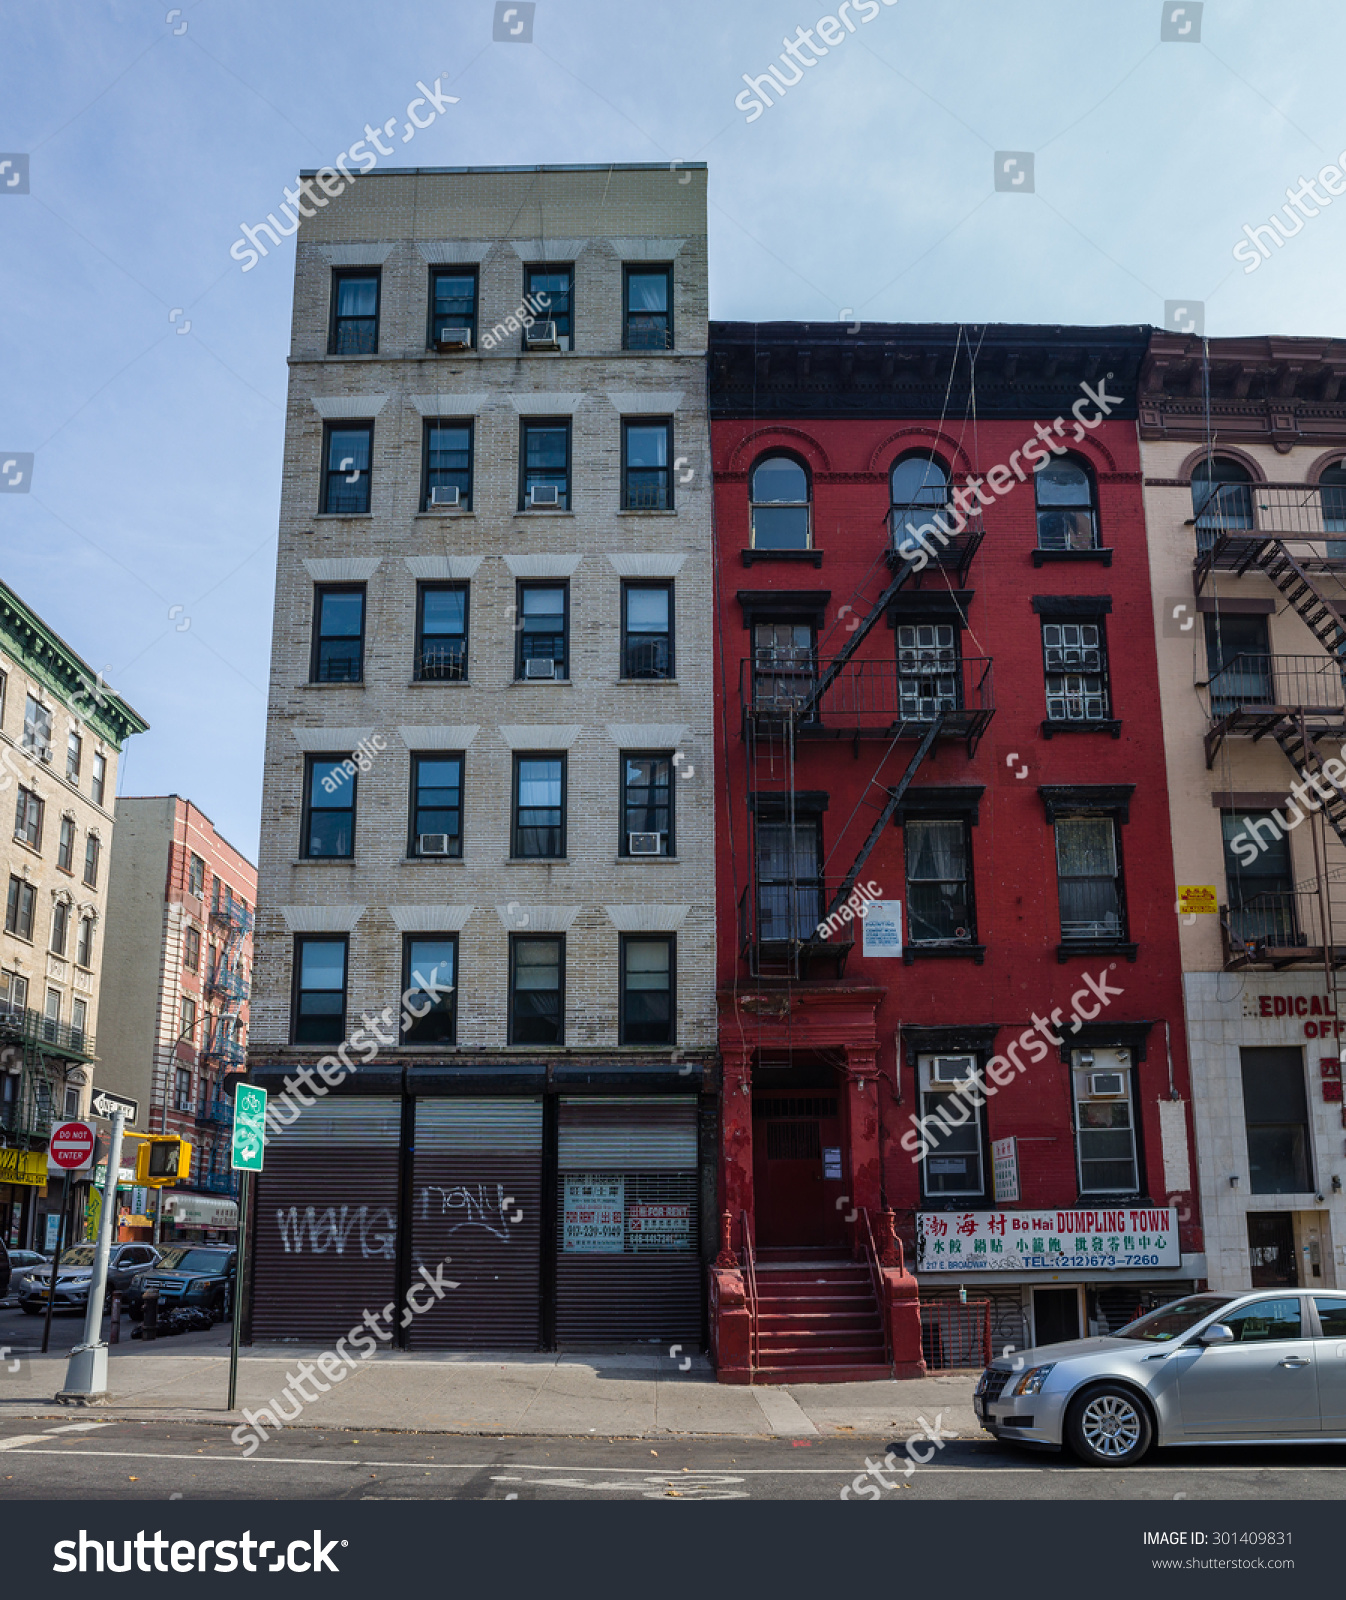 New York City Apartment Buildings: Red Apartment Building Chinatown Where Main Stock Photo